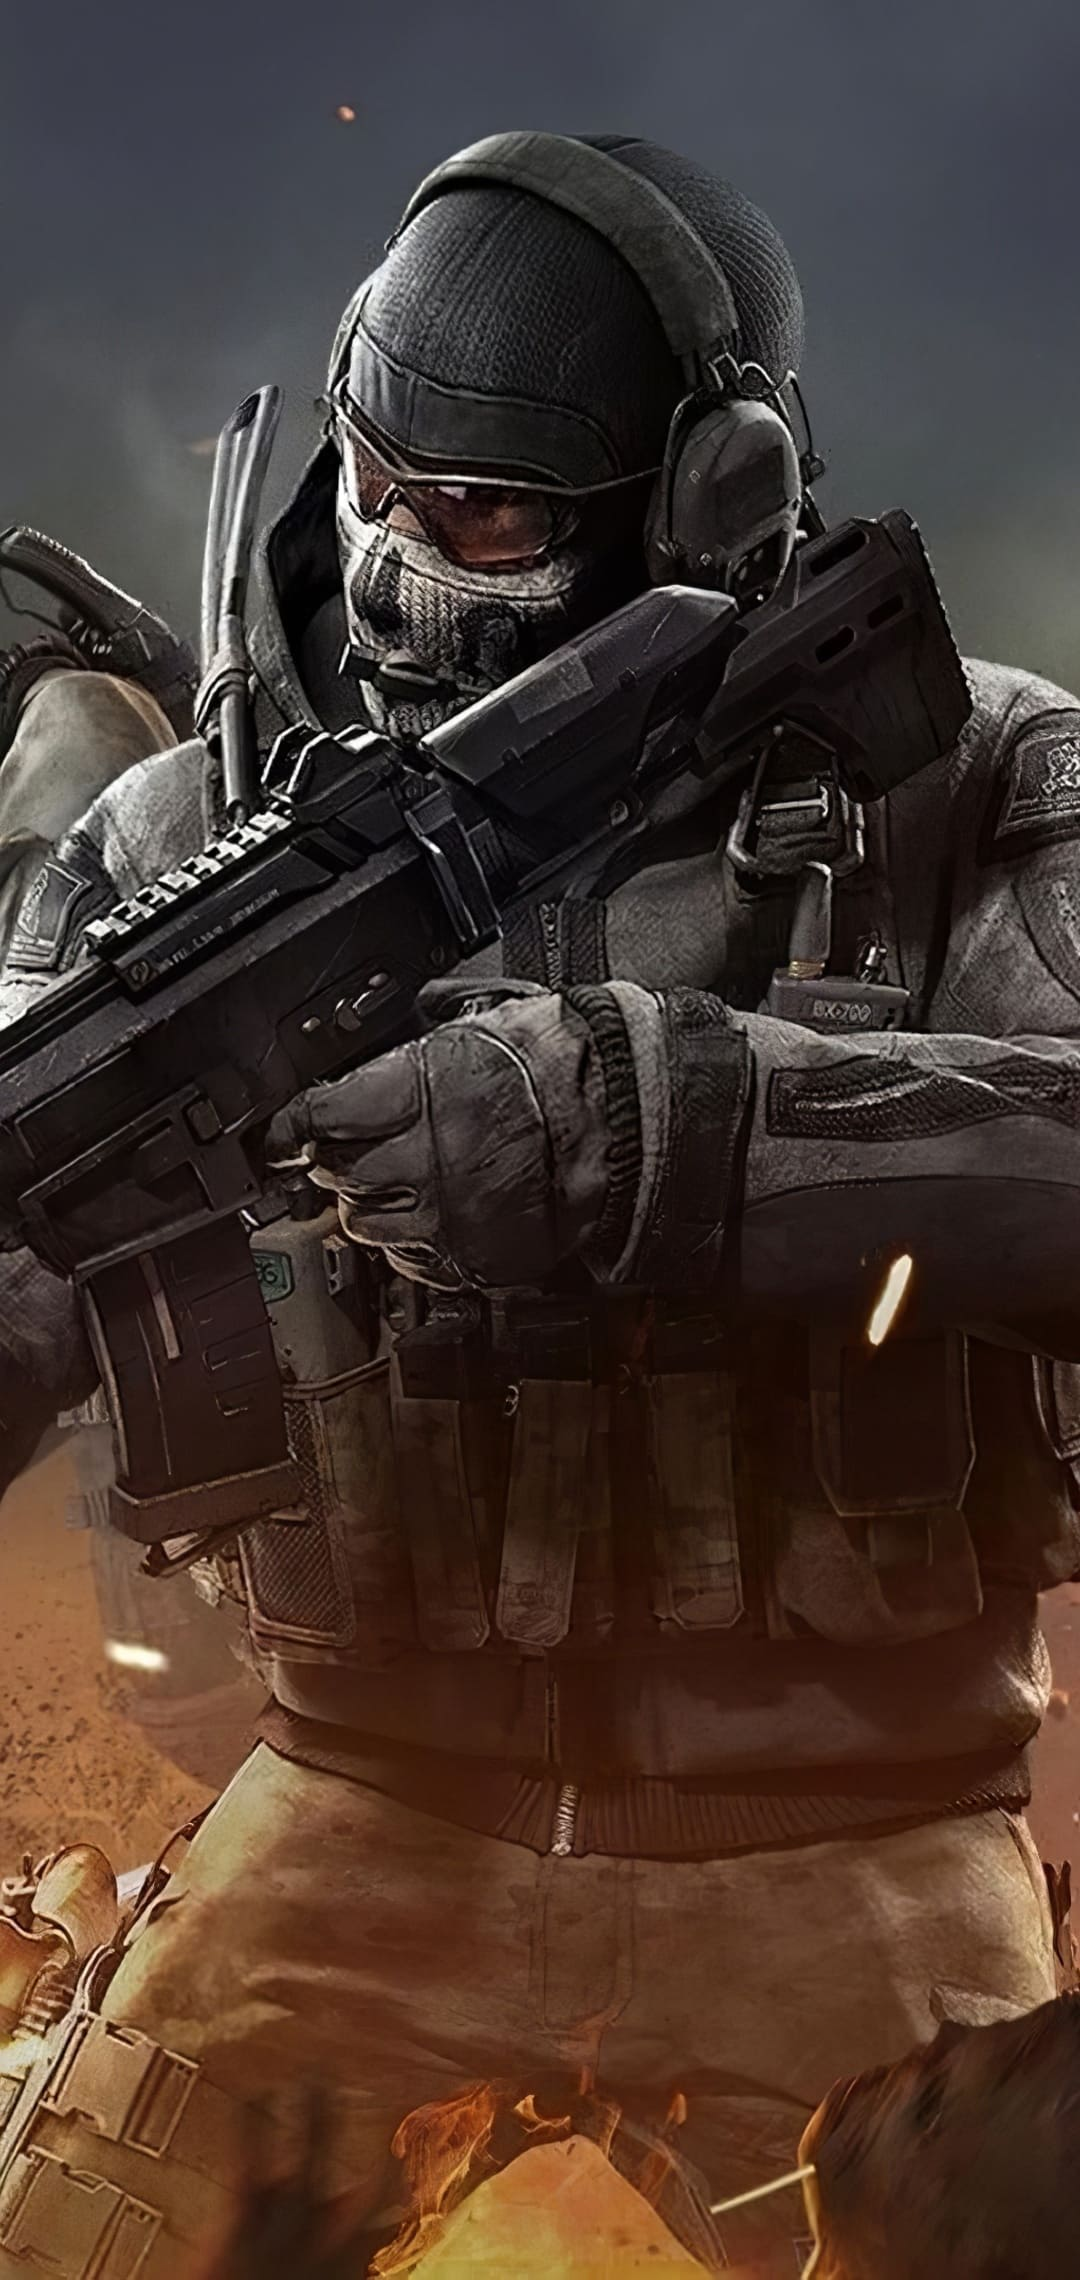 Call of Duty Wallpapers - Top 4k Backgrounds Download ...